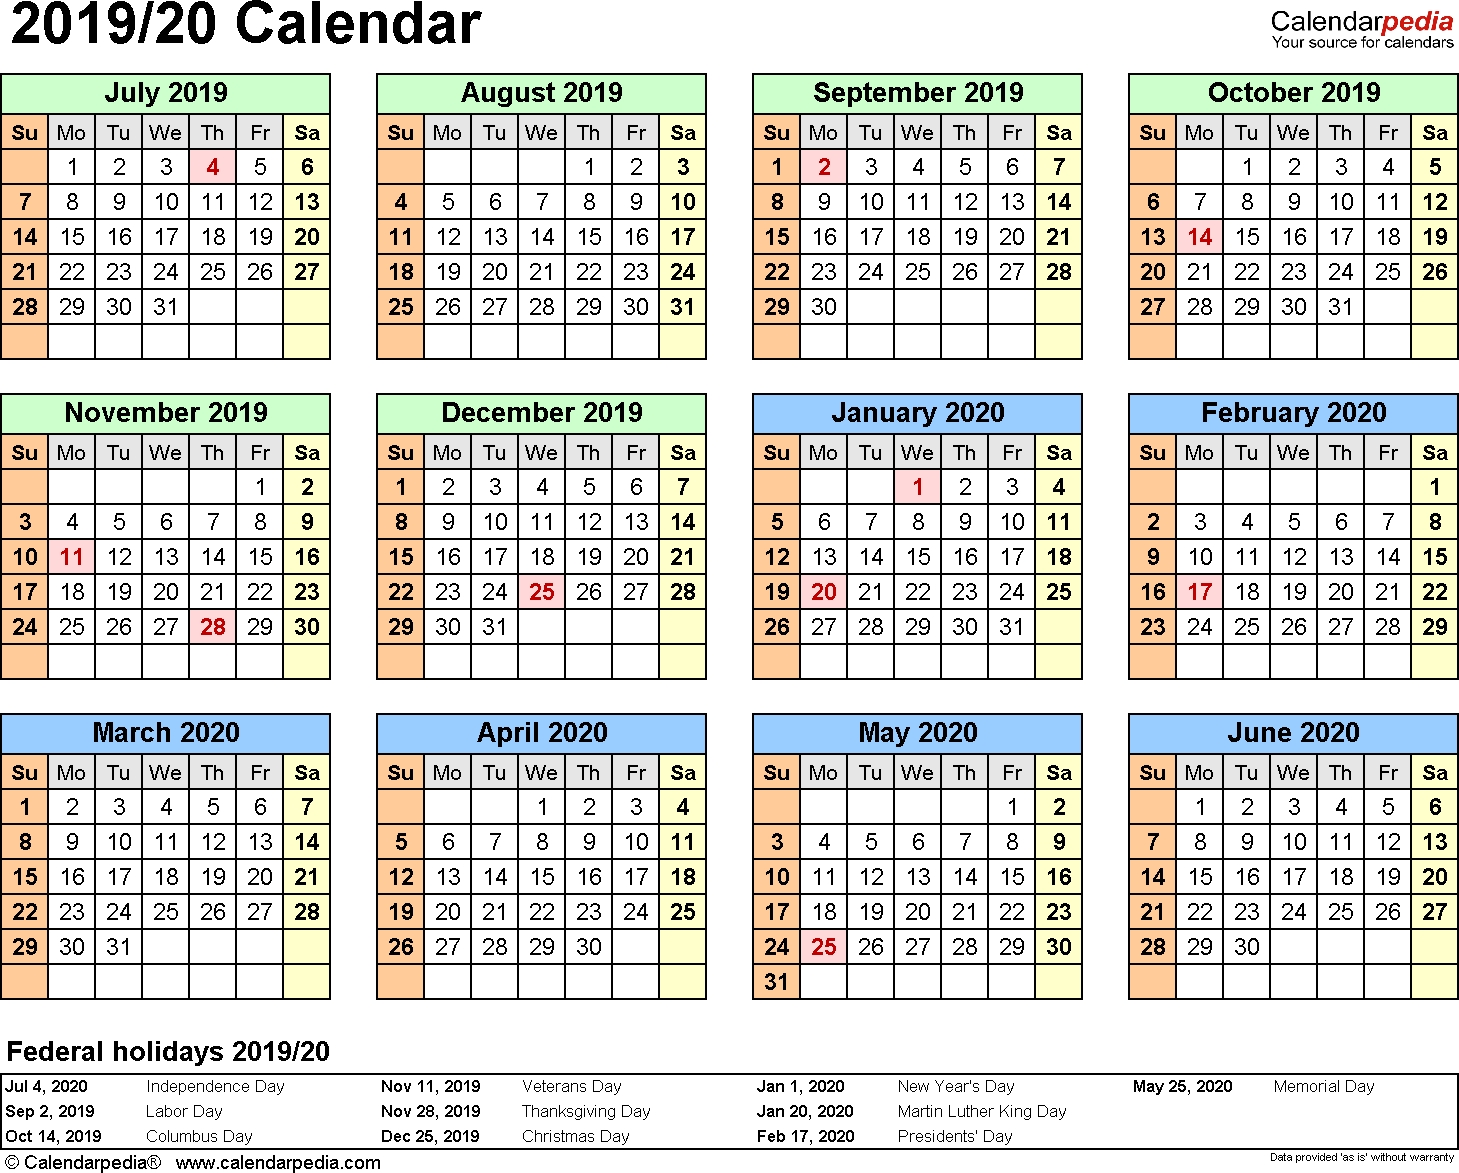 Split Year Calendars 2019/2020 (July To June) - Word Templates